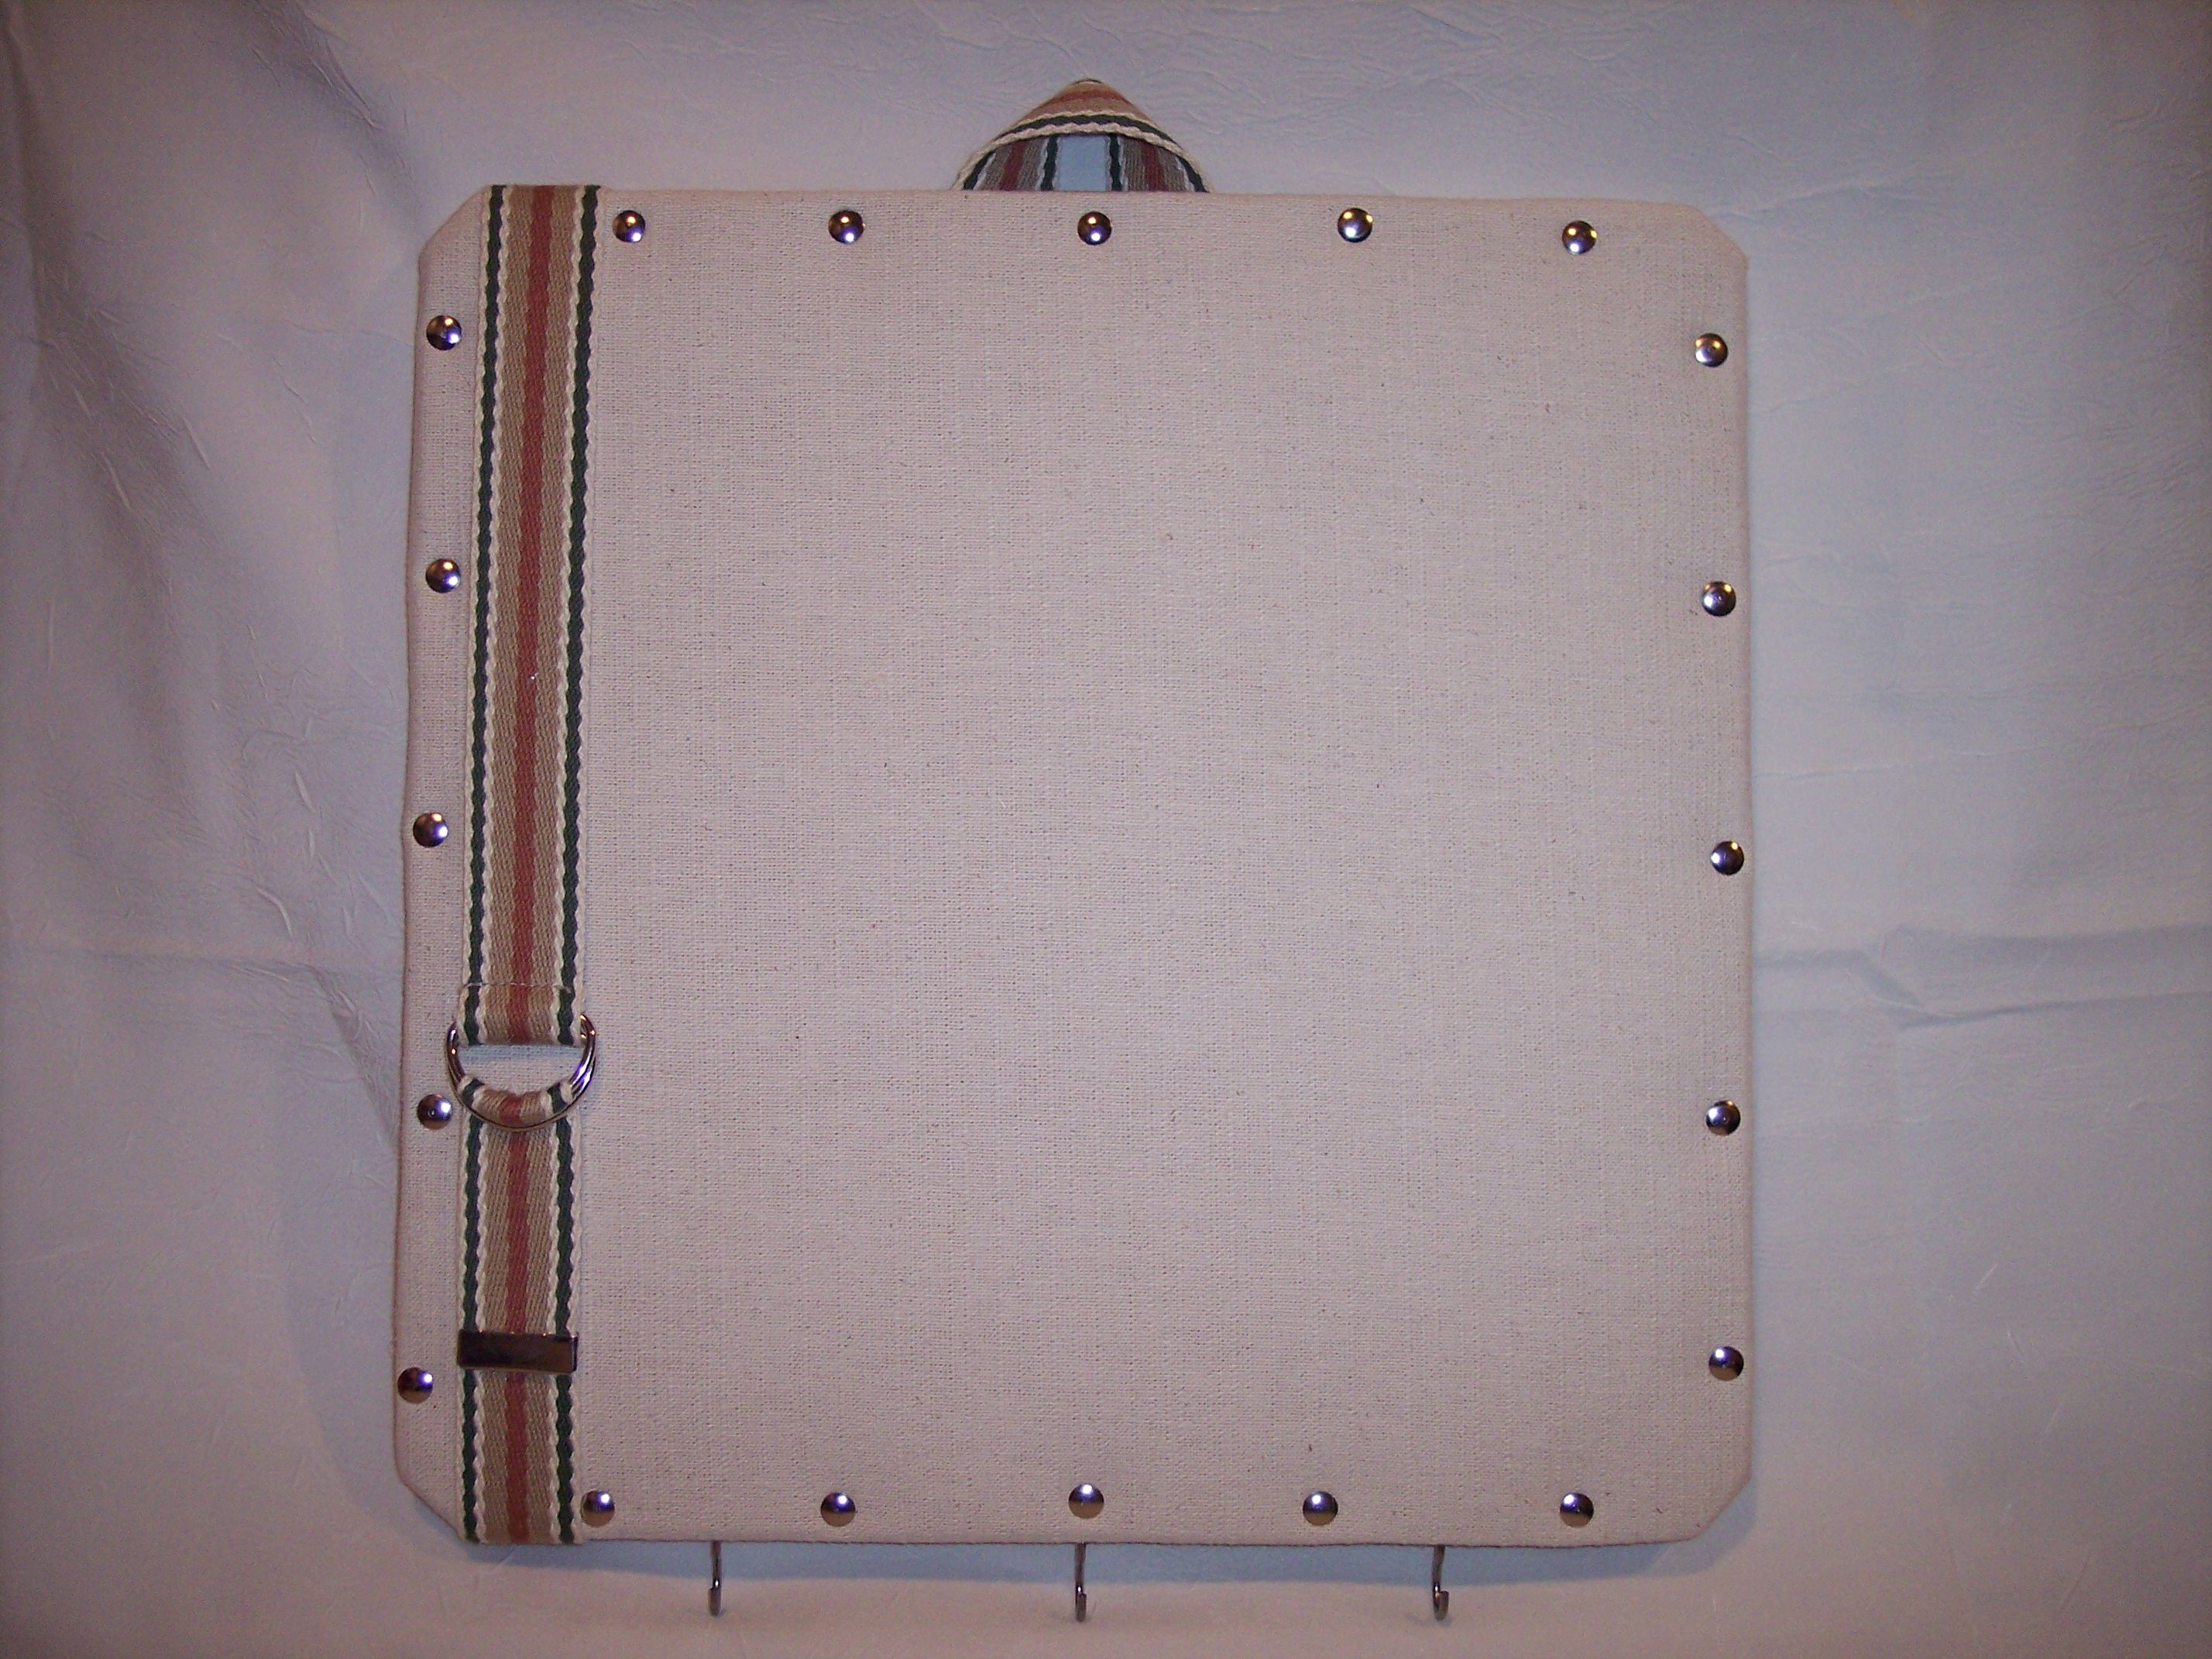 """14""""x15"""" Ivory Canvas covered Cork Memo Board & Keyholder by Marlo Custom Creations on ETSY"""